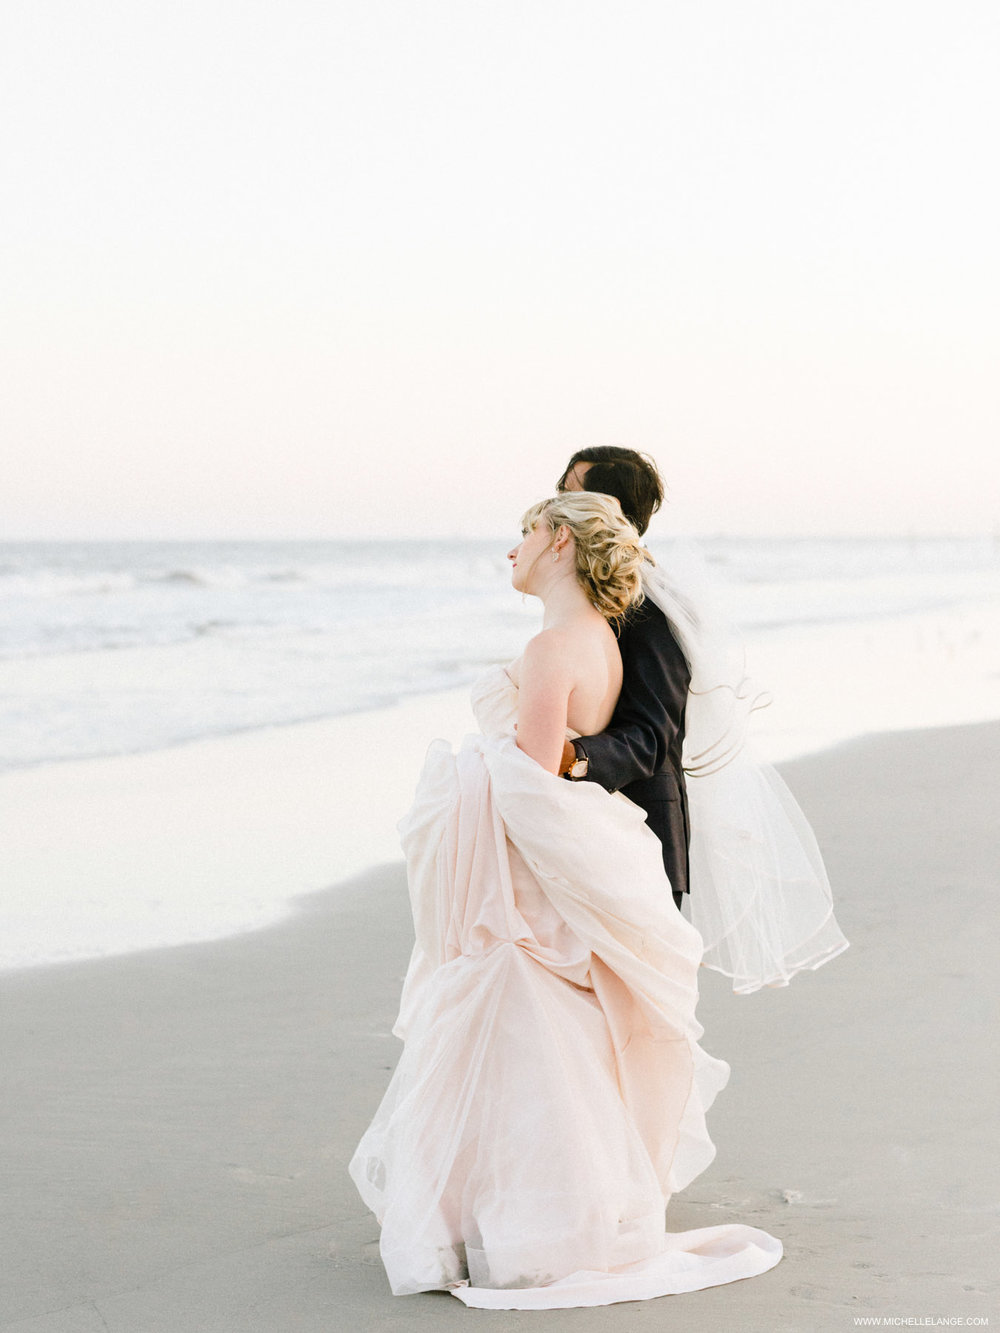 Cape May NJ Wedding Photographer at Hotel Icona Diamond Beach